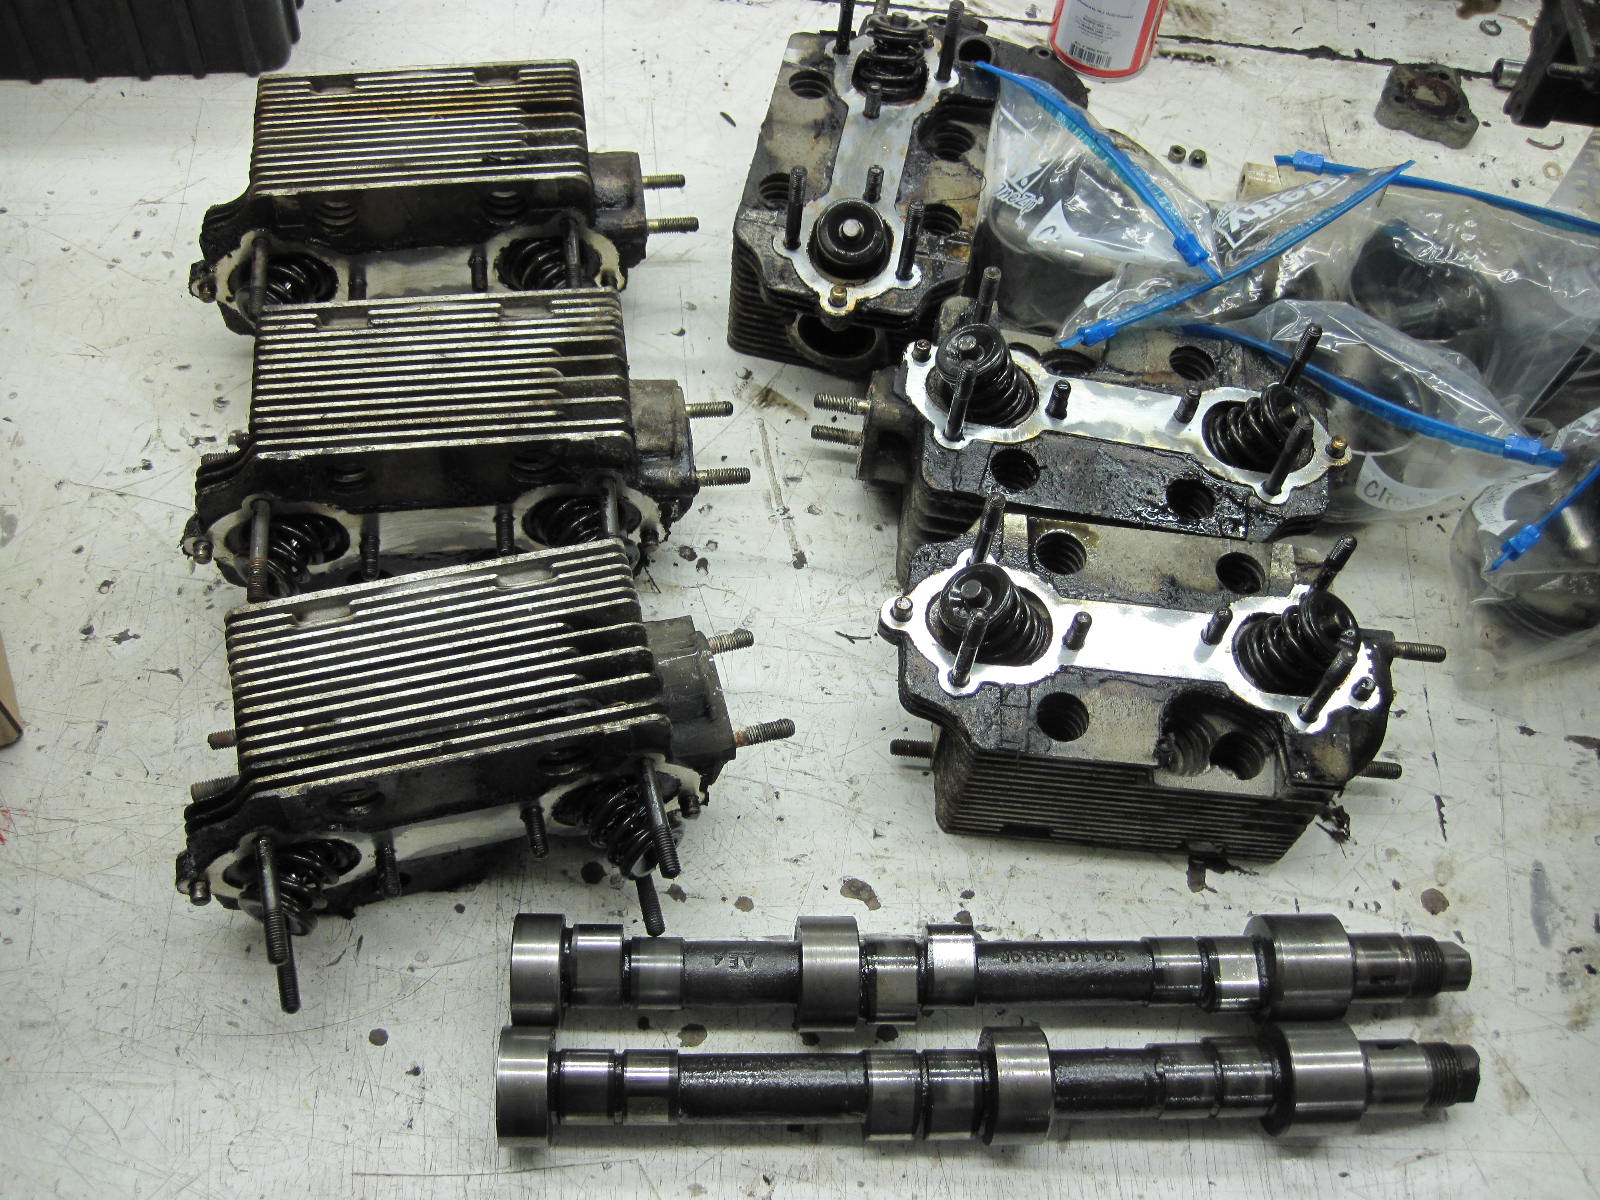 Early 911 Porsche engine apart